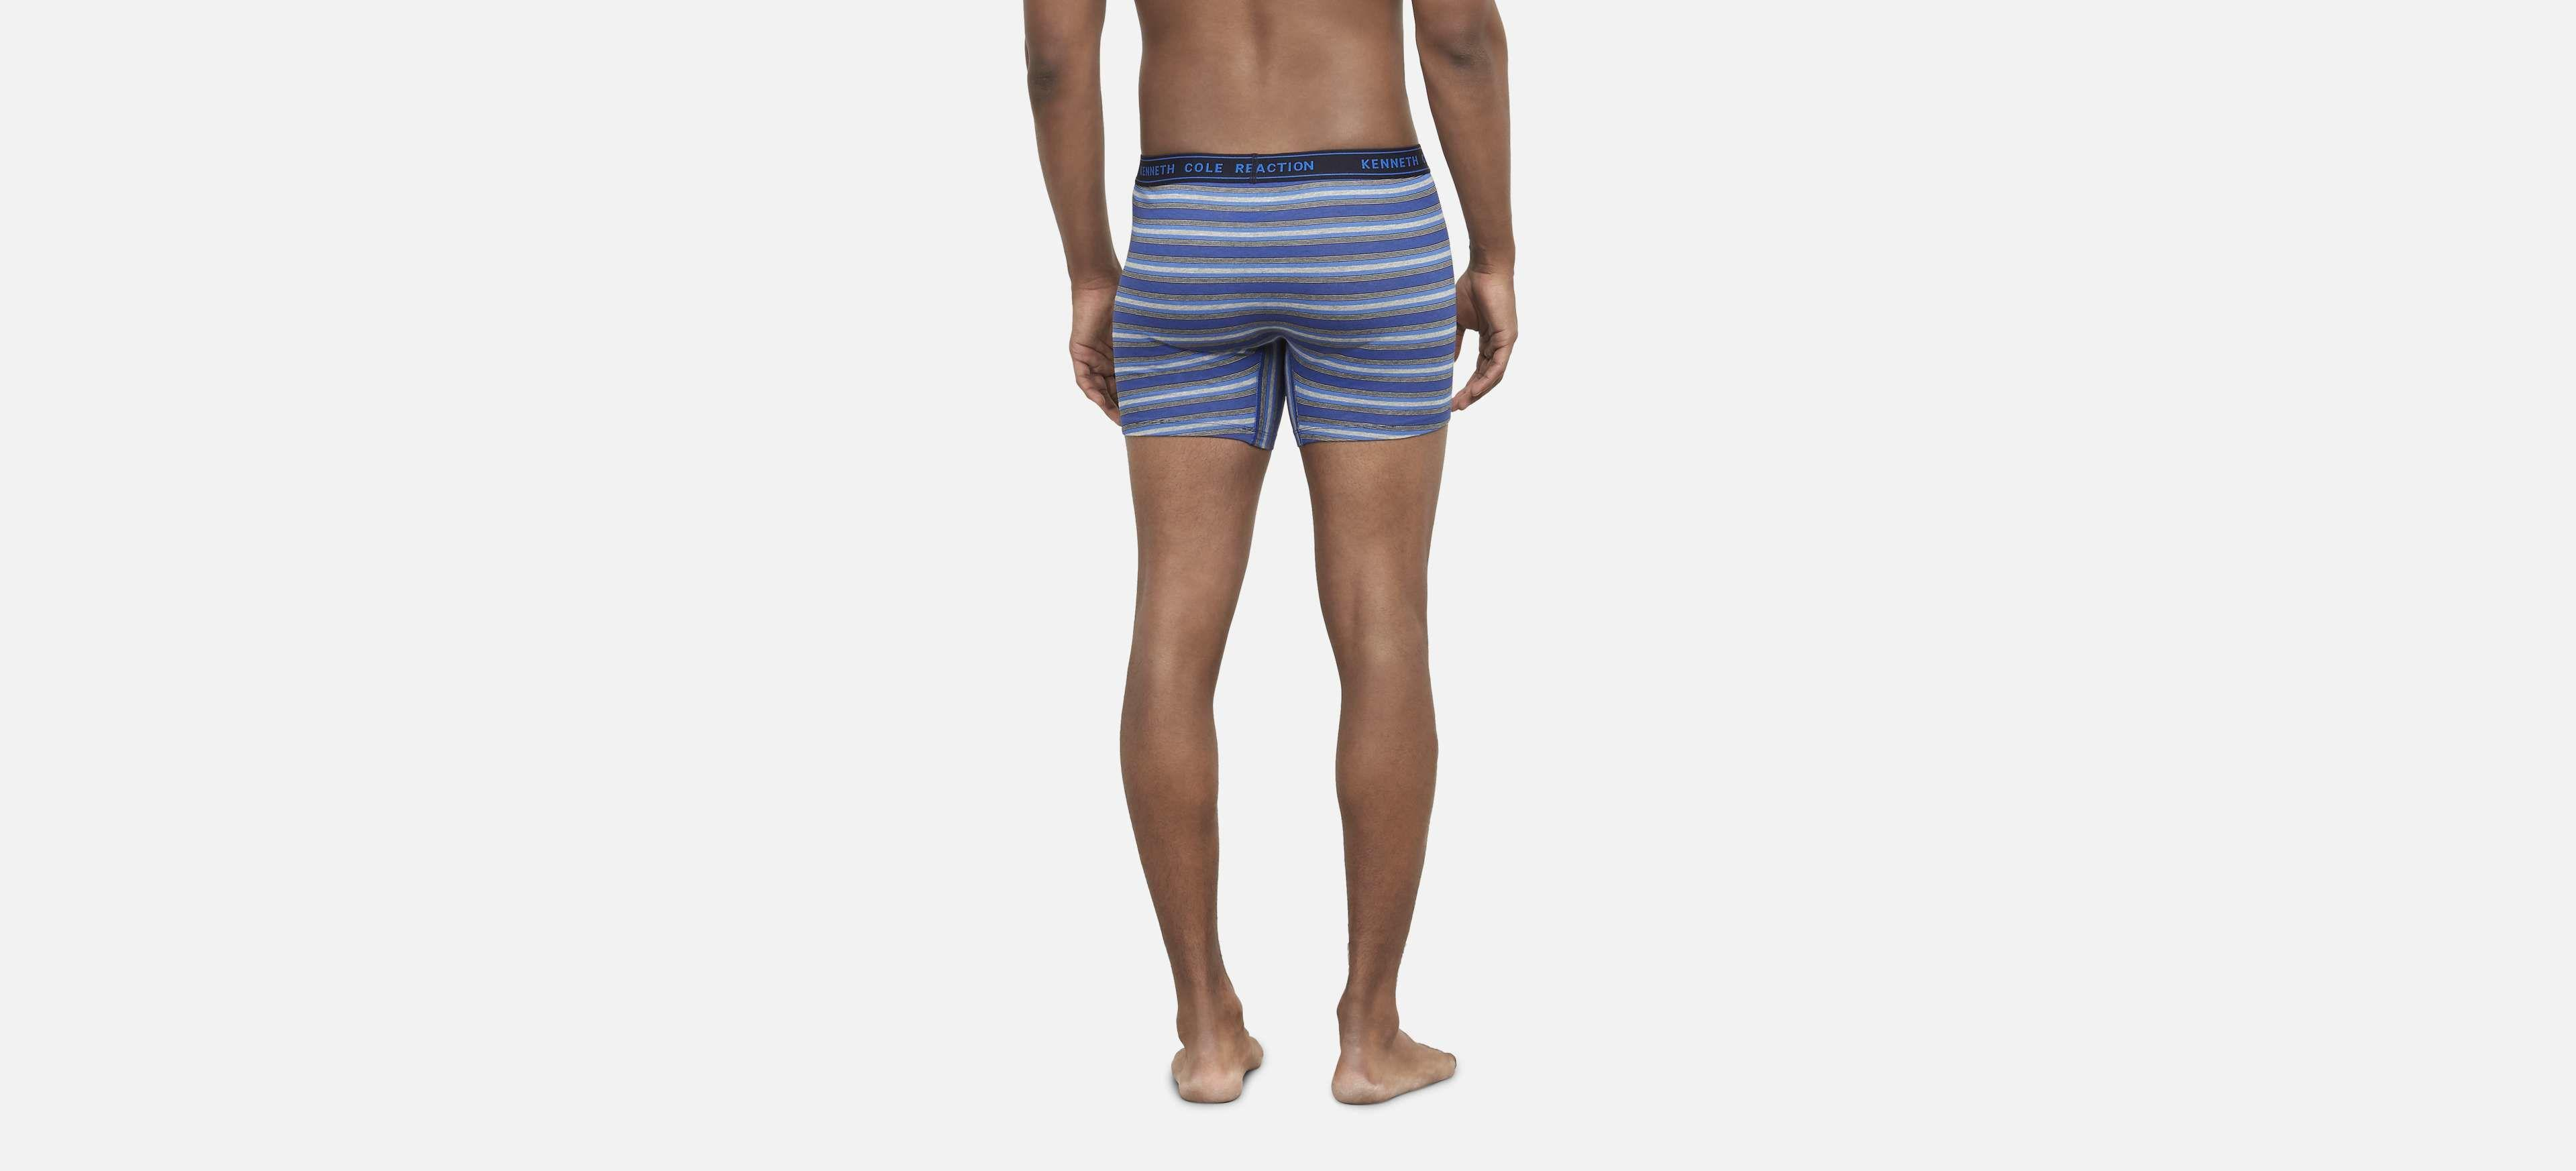 abc87b59745c7b Kenneth Cole Reaction - Blue Men's Stripe Knit Boxer 3-pack With Cotton  Stretch for. View fullscreen